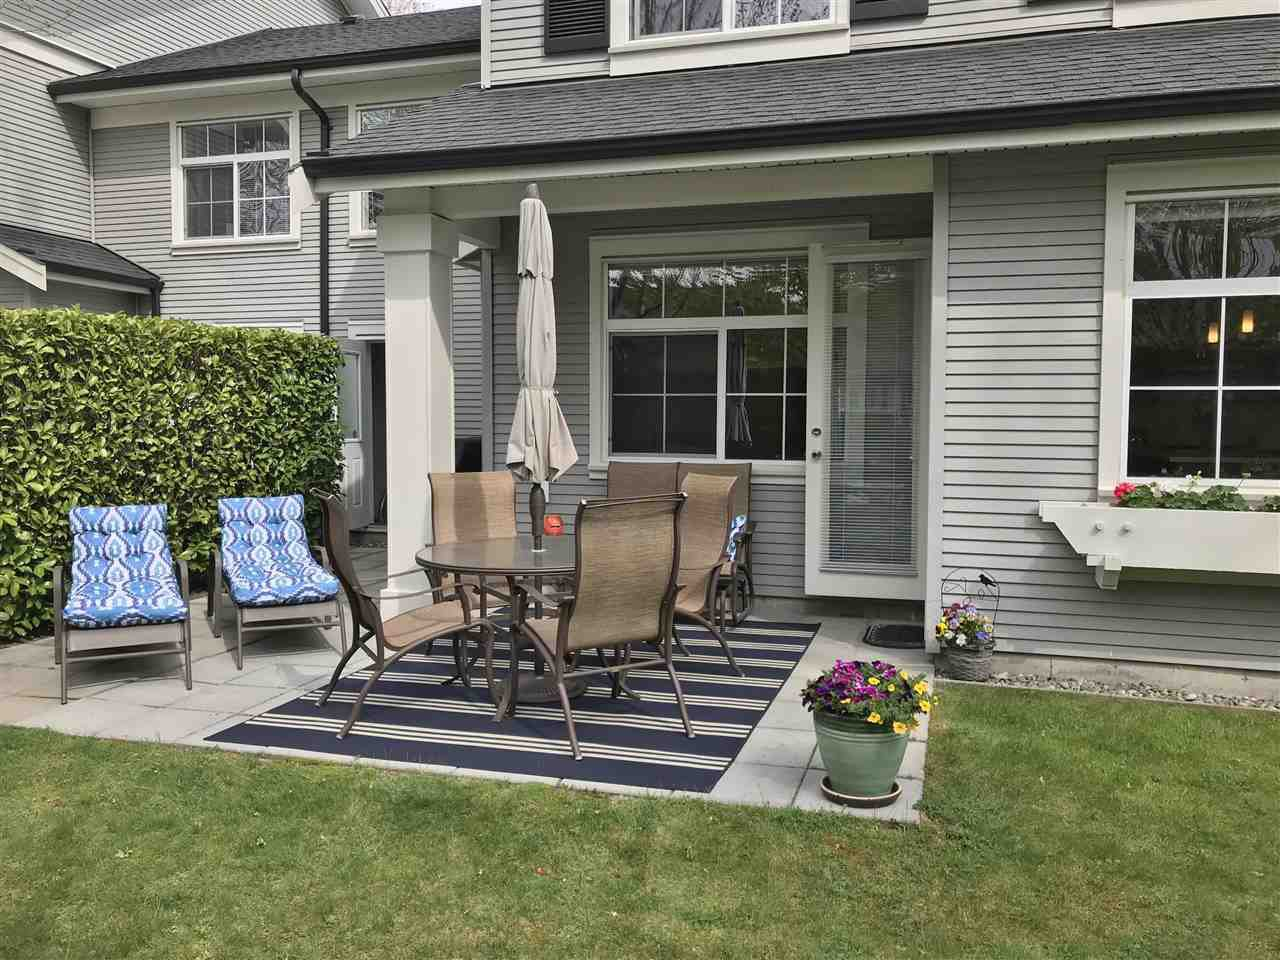 """Photo 17: Photos: 18 19490 FRASER Way in Pitt Meadows: South Meadows Townhouse for sale in """"Kingfisher at Osprey"""" : MLS®# R2444045"""